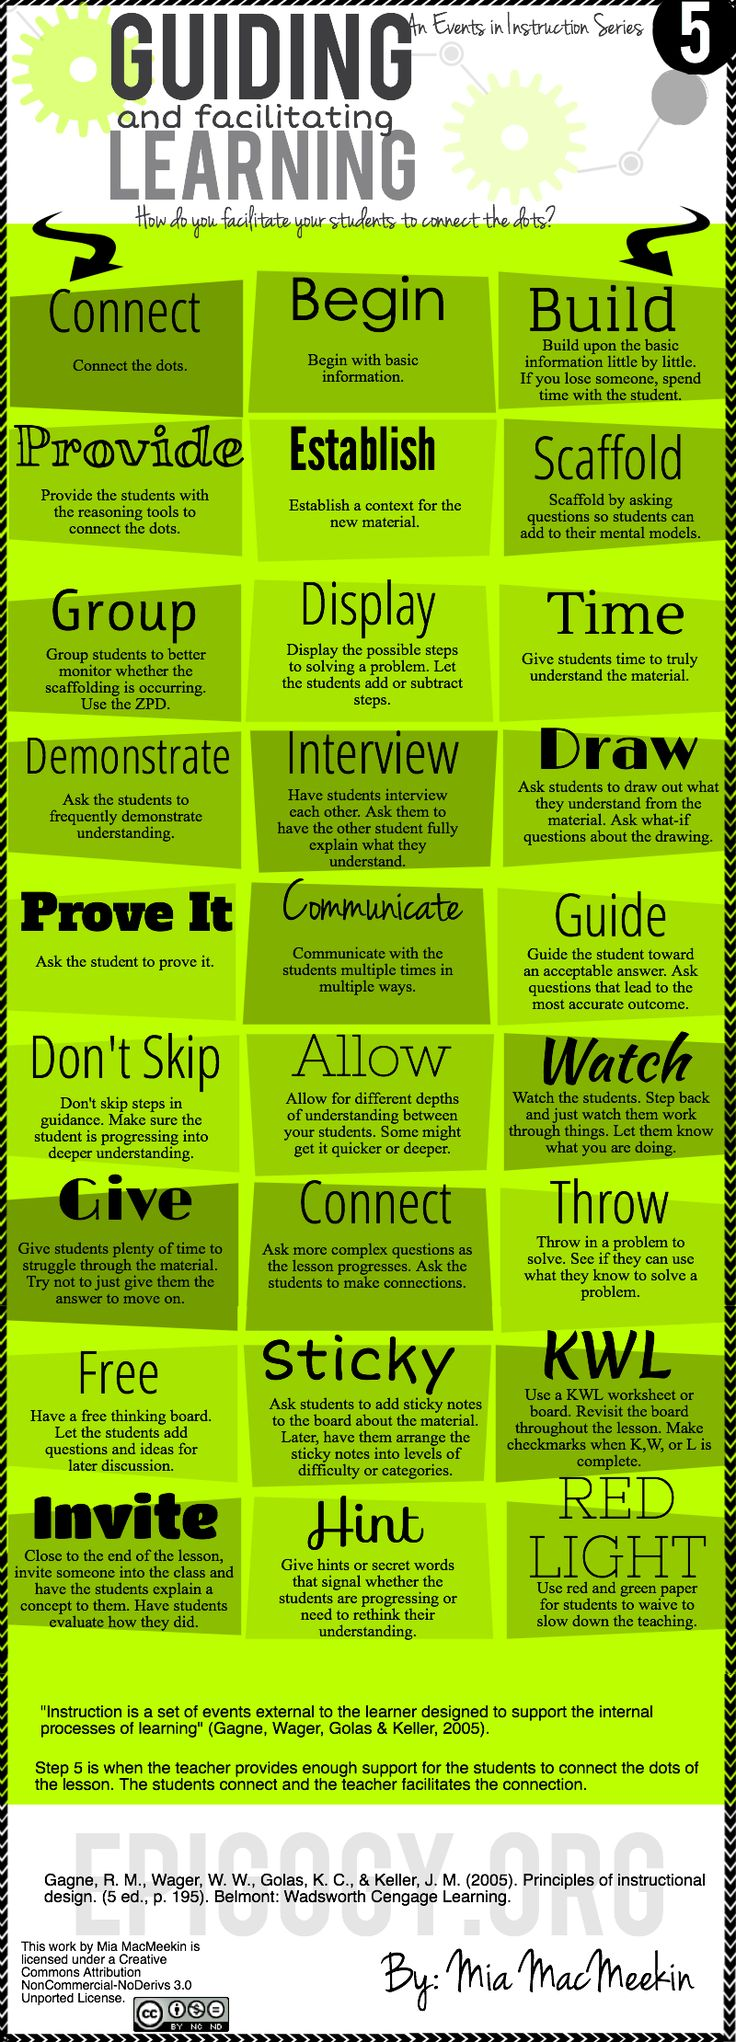 Here's a great infographic on ways to guide and facilitate learning.